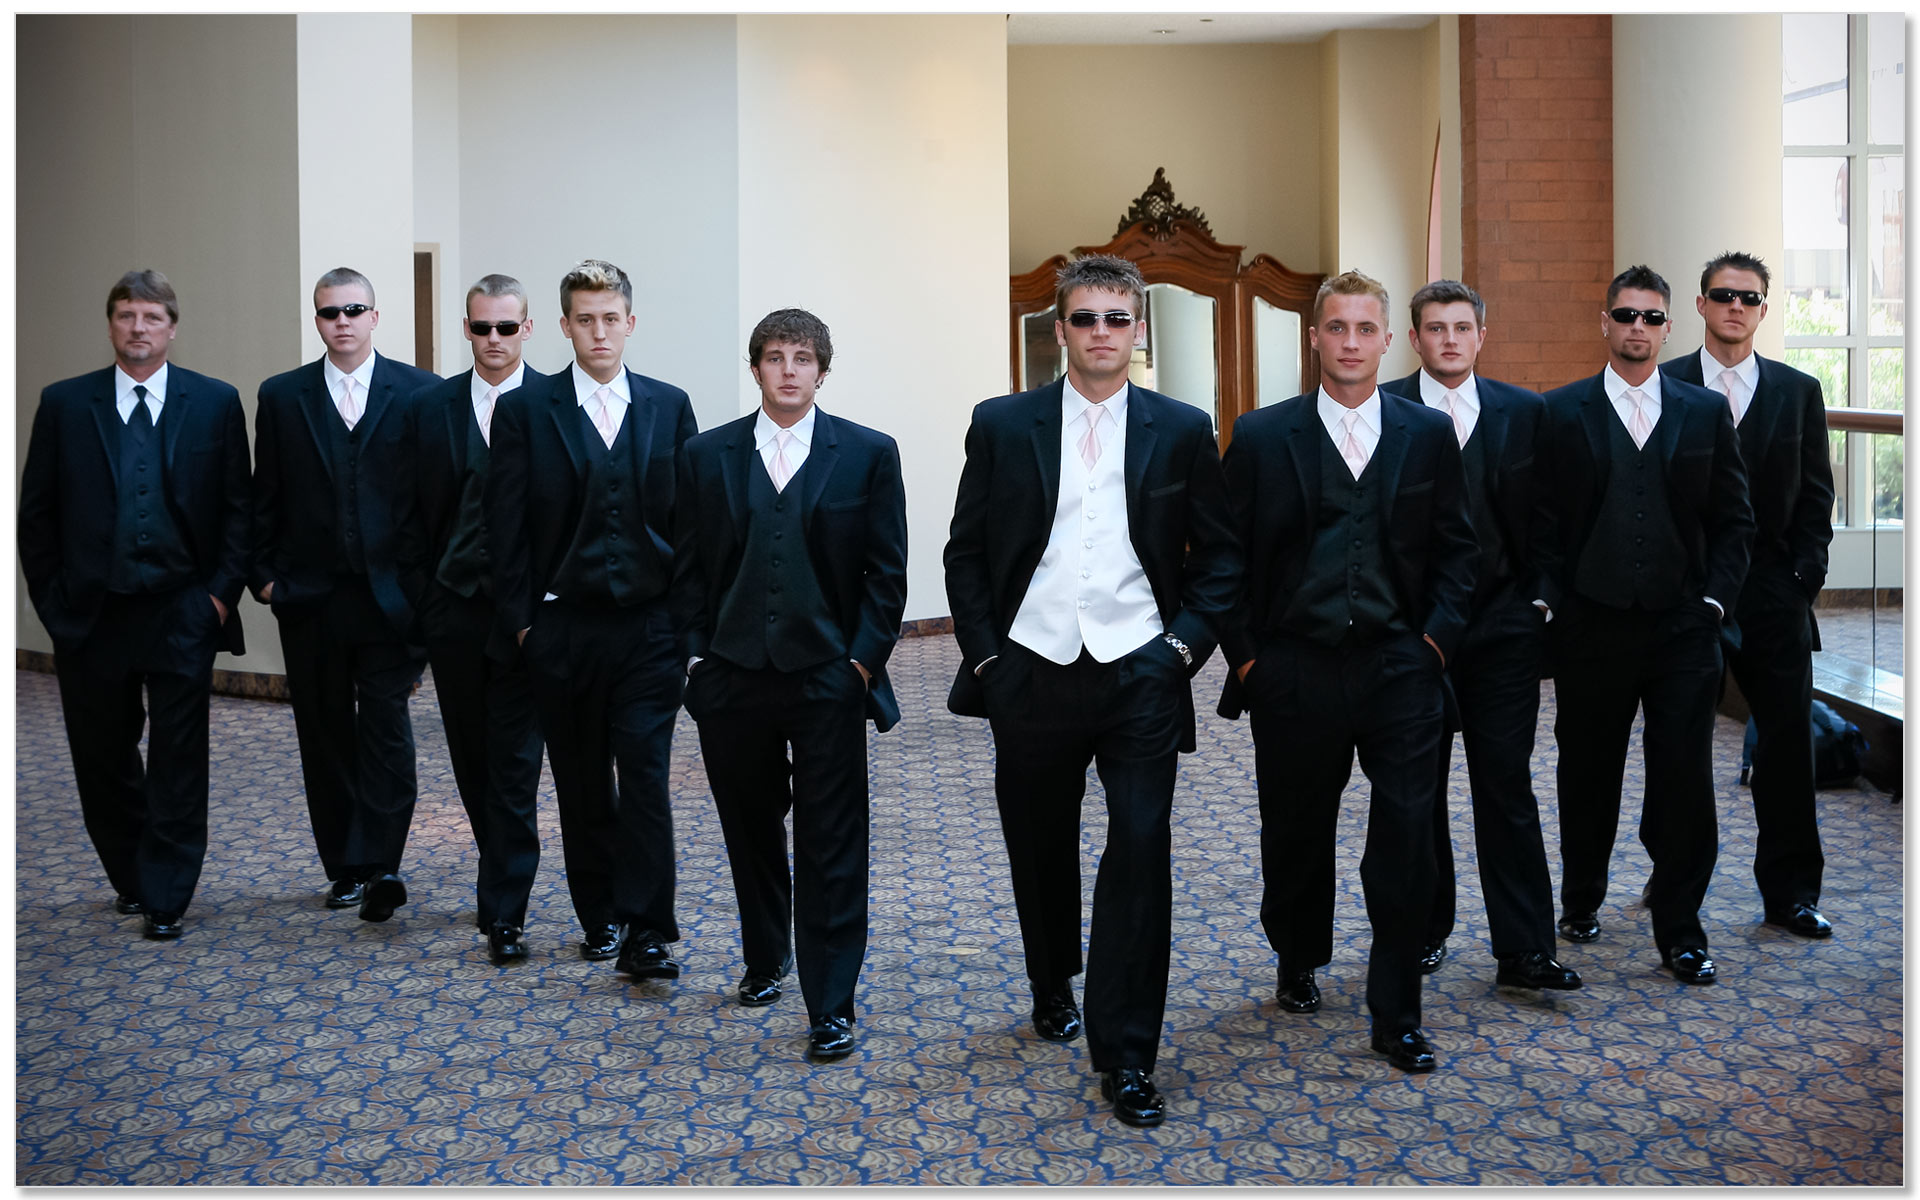 Cincinnati Music Hall Wedding Oceans 11 Groomsmen